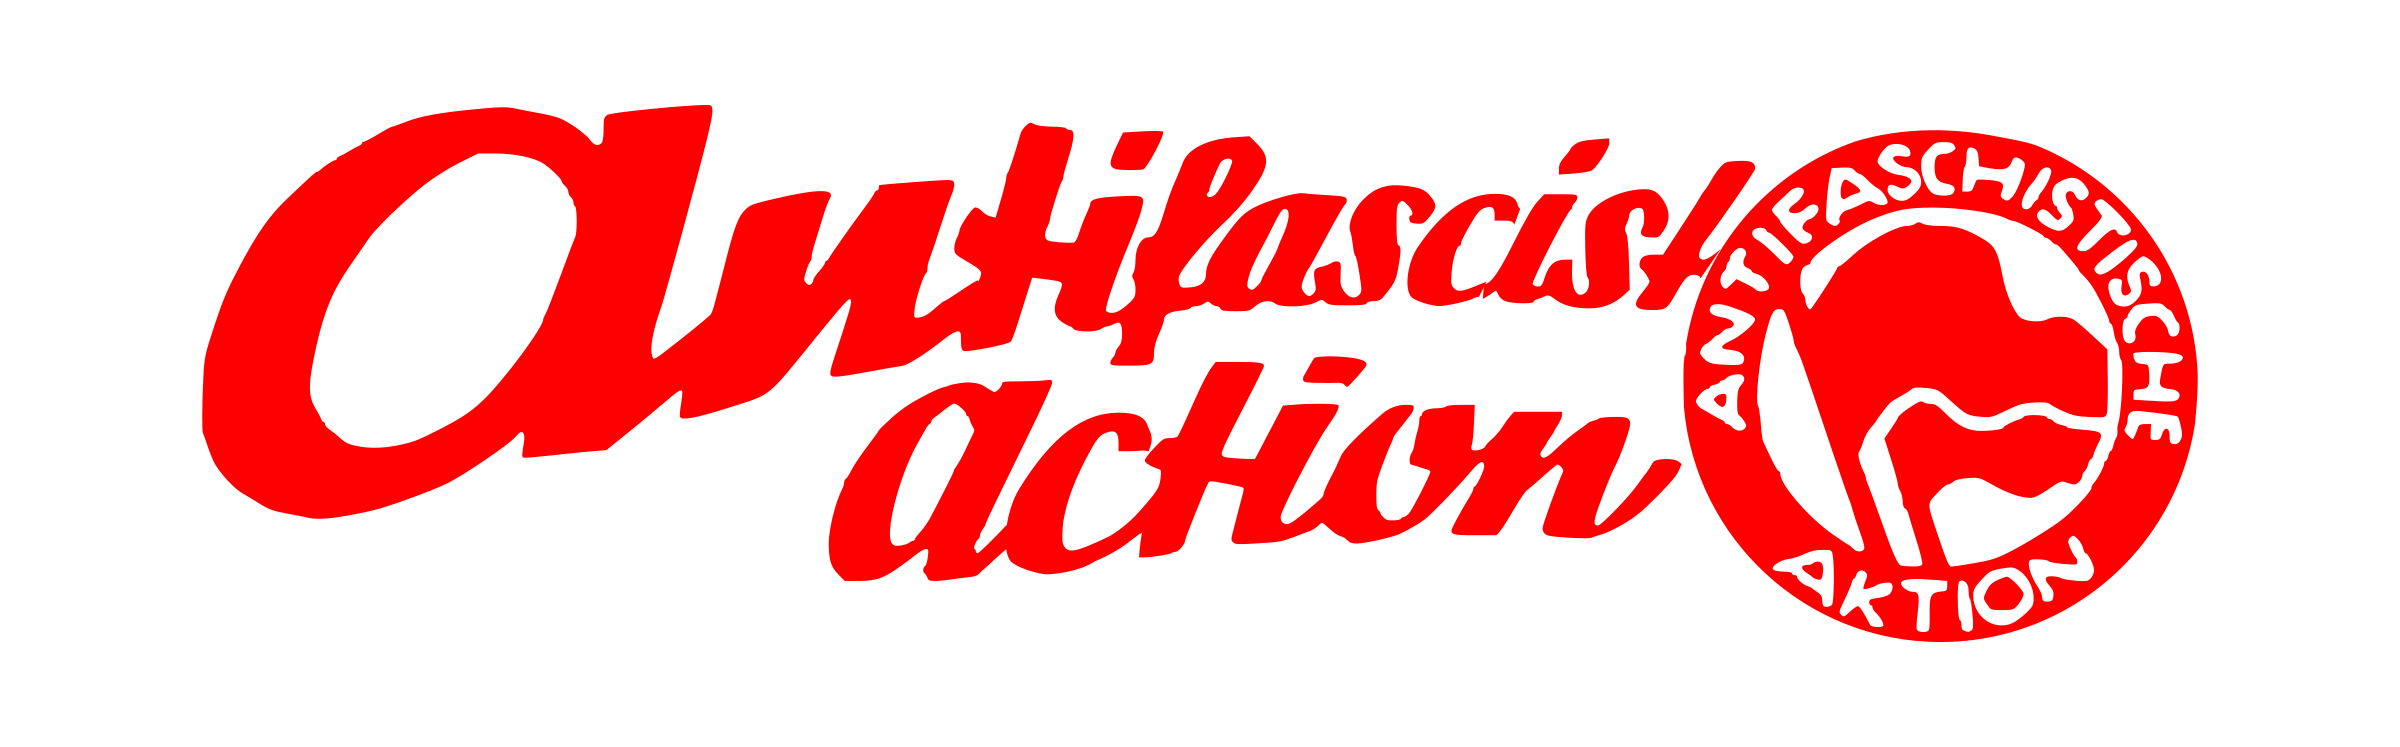 antifascist action lettering by worker